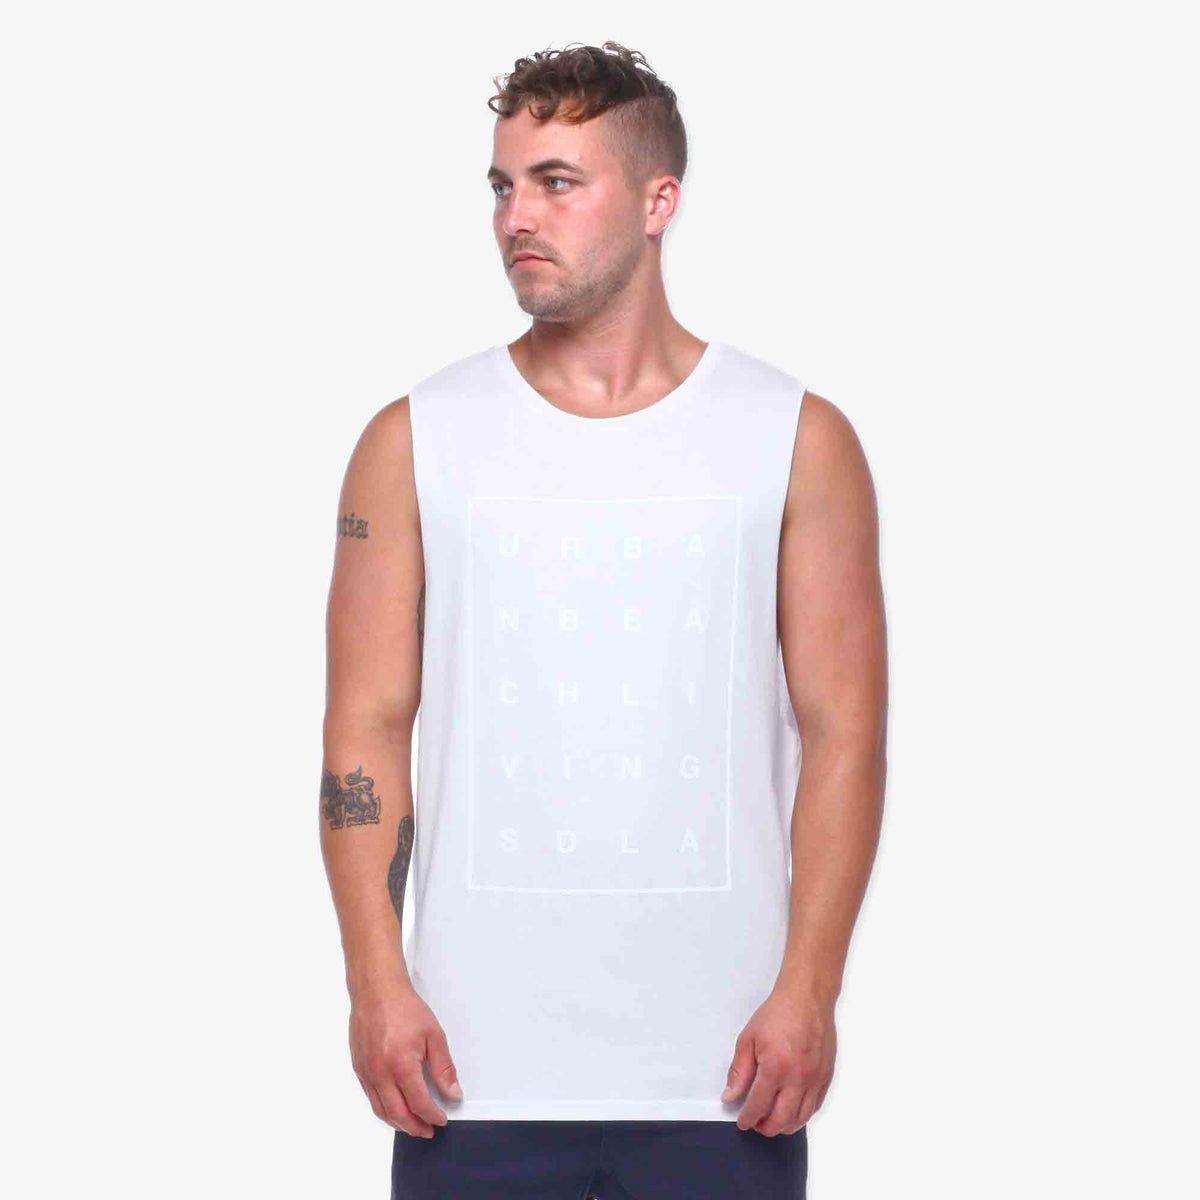 Livin Muscle Tank - White